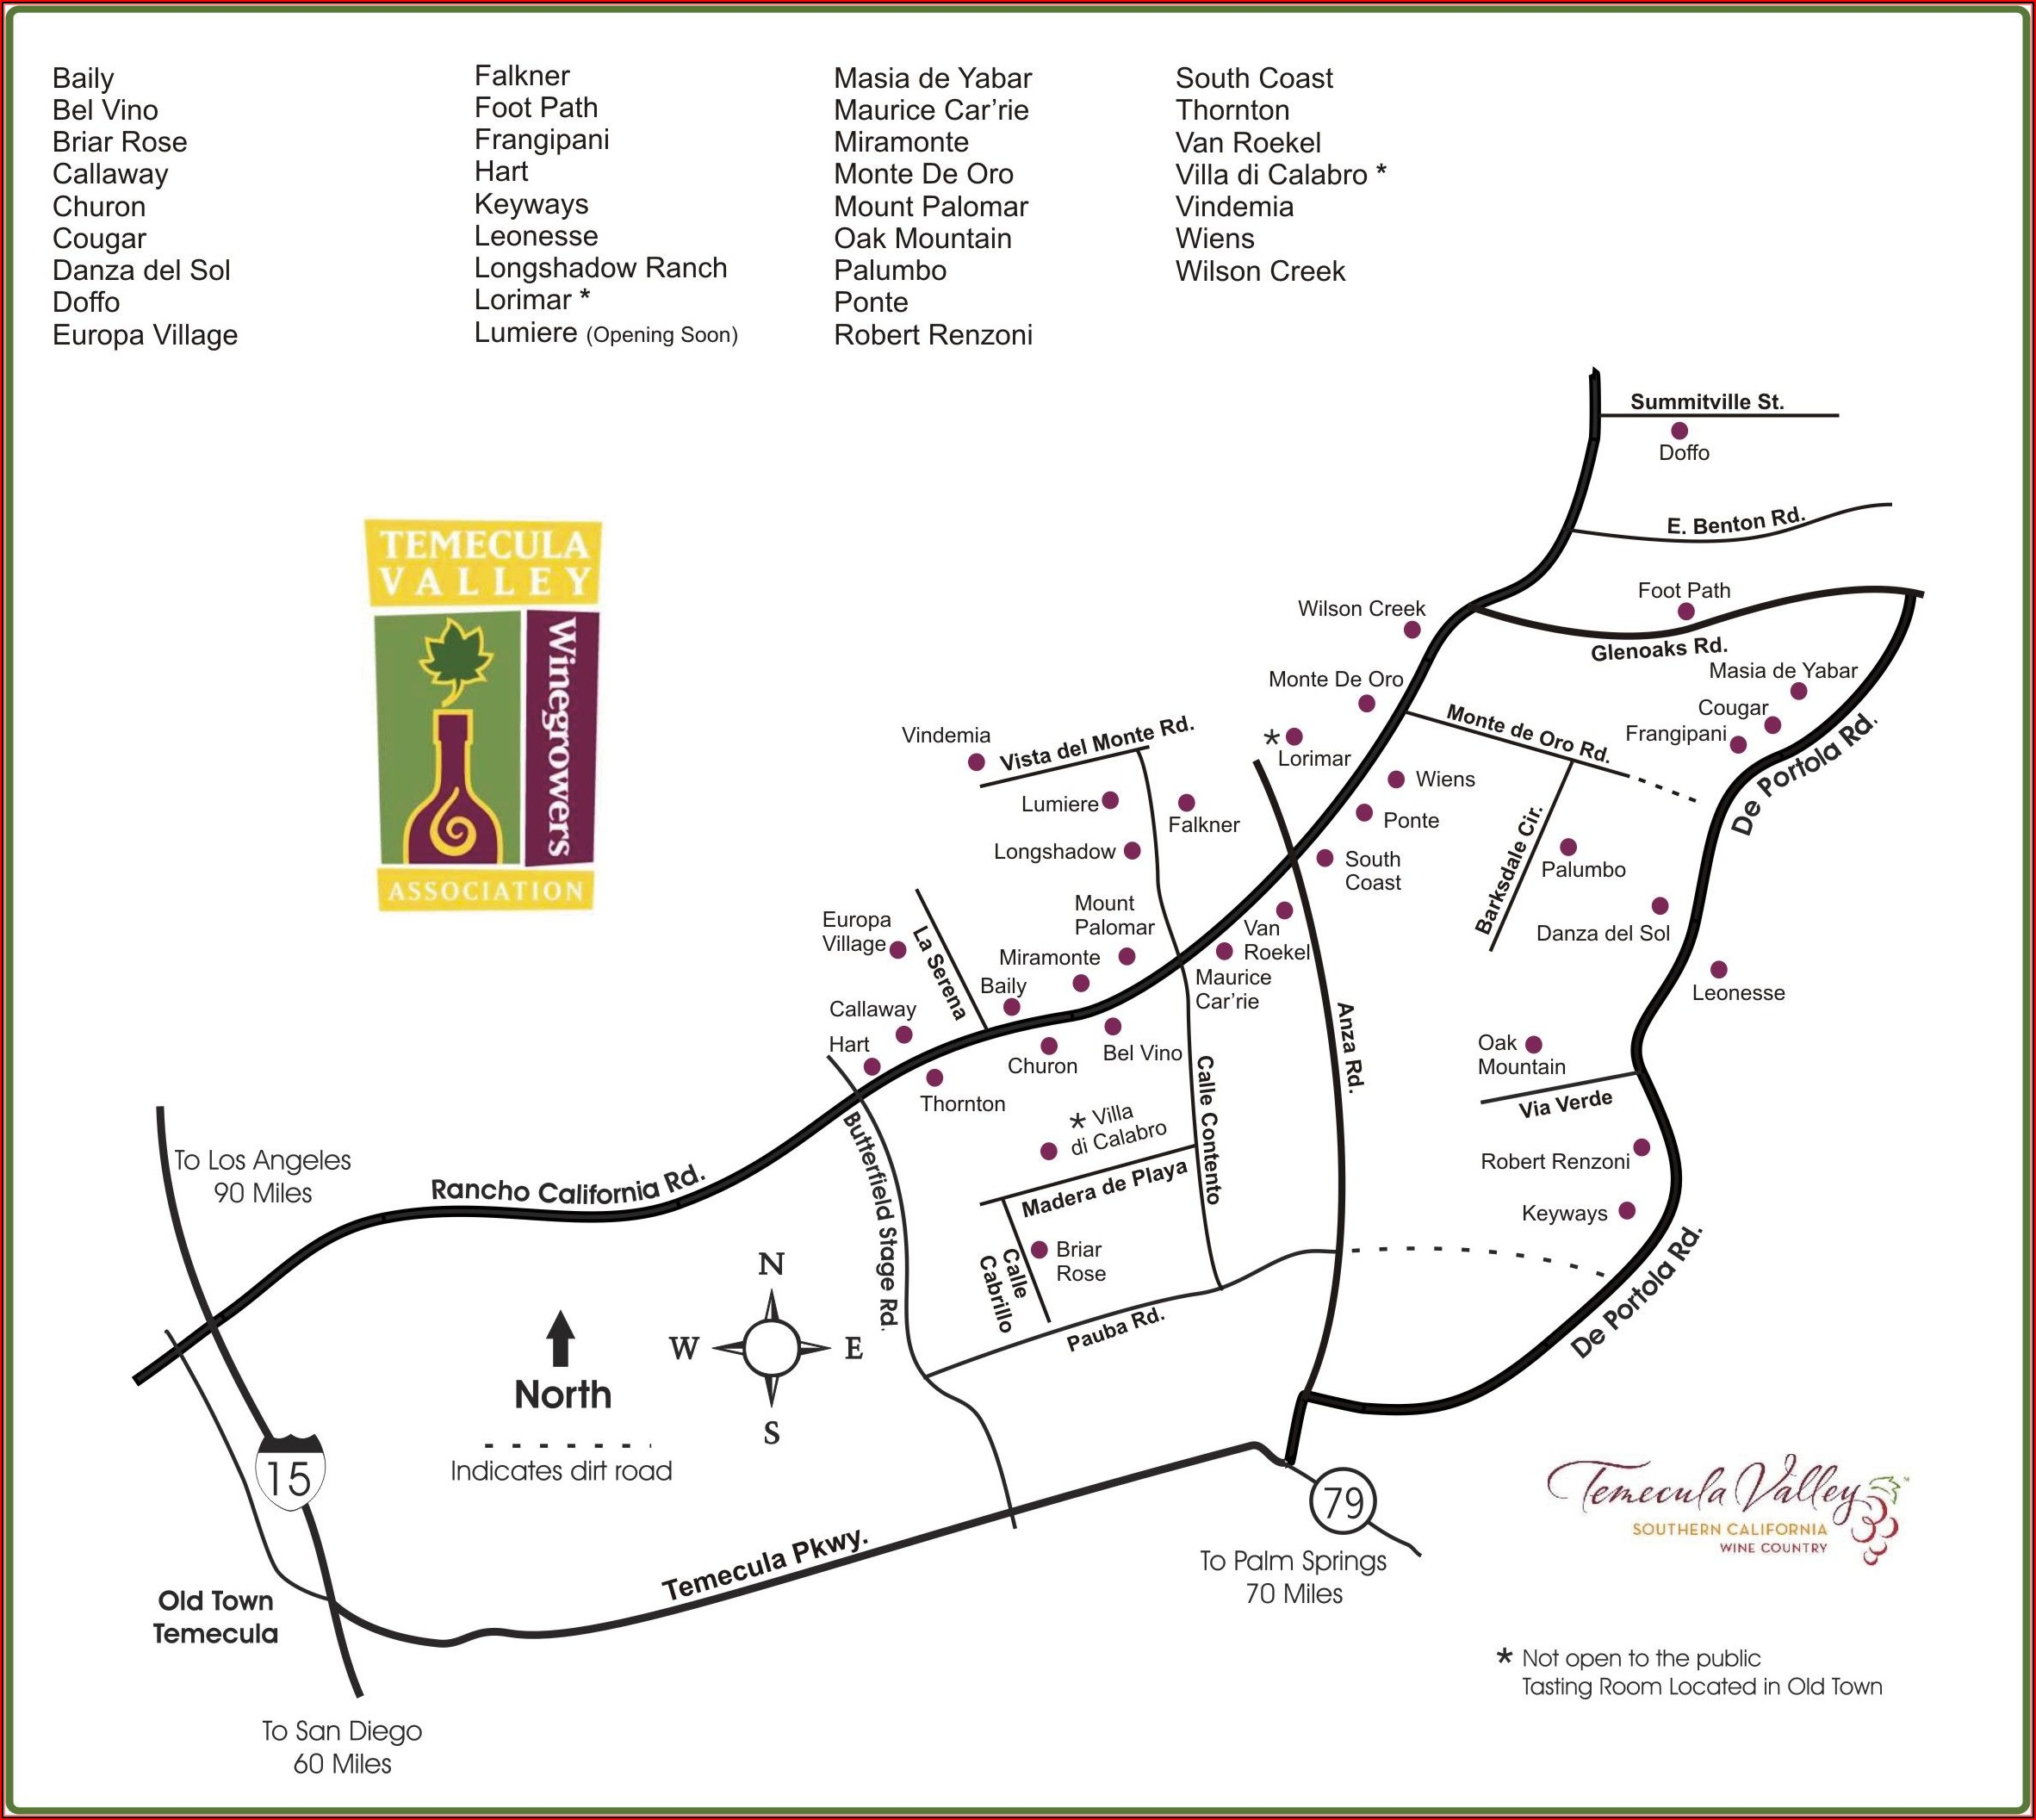 Map Of Southern California Wineries